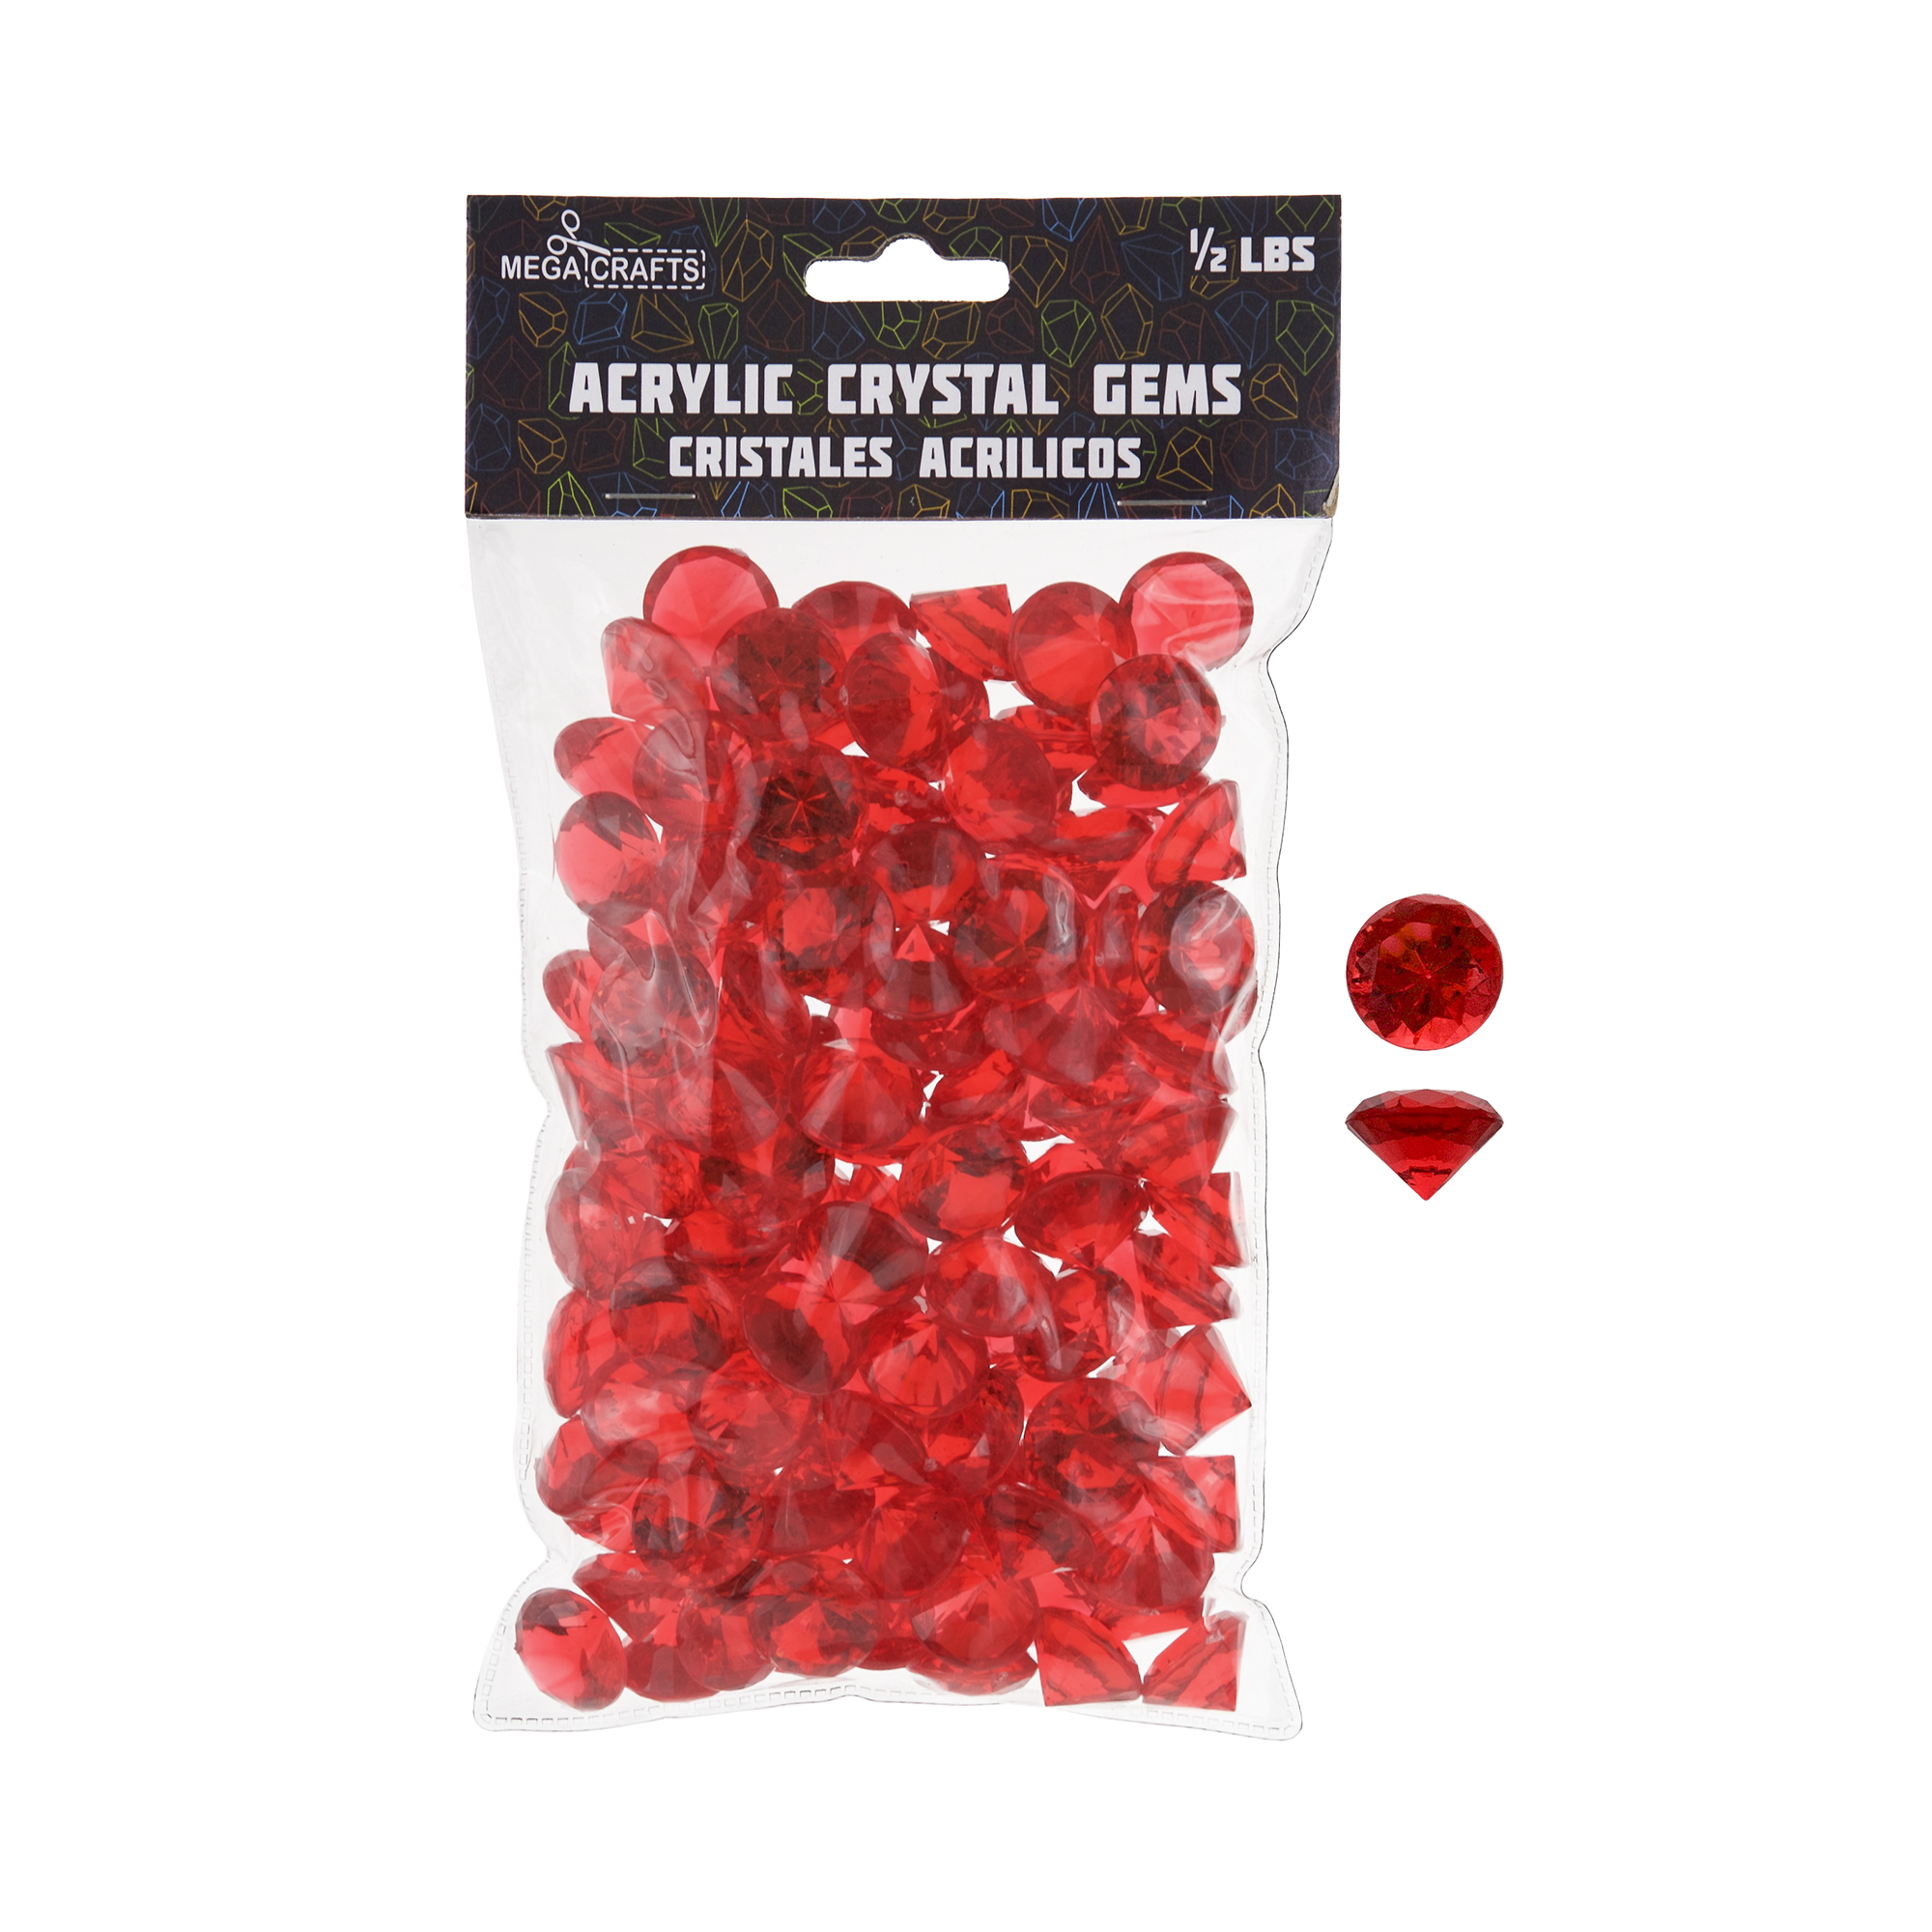 Mega Crafts - 1/2 lb Acrylic Small Diamonds Red | Plastic Glass Gems For Arts And Crafts, Vase Fillers And Table Scatters, Decoration Stones, Shiny Pebbles